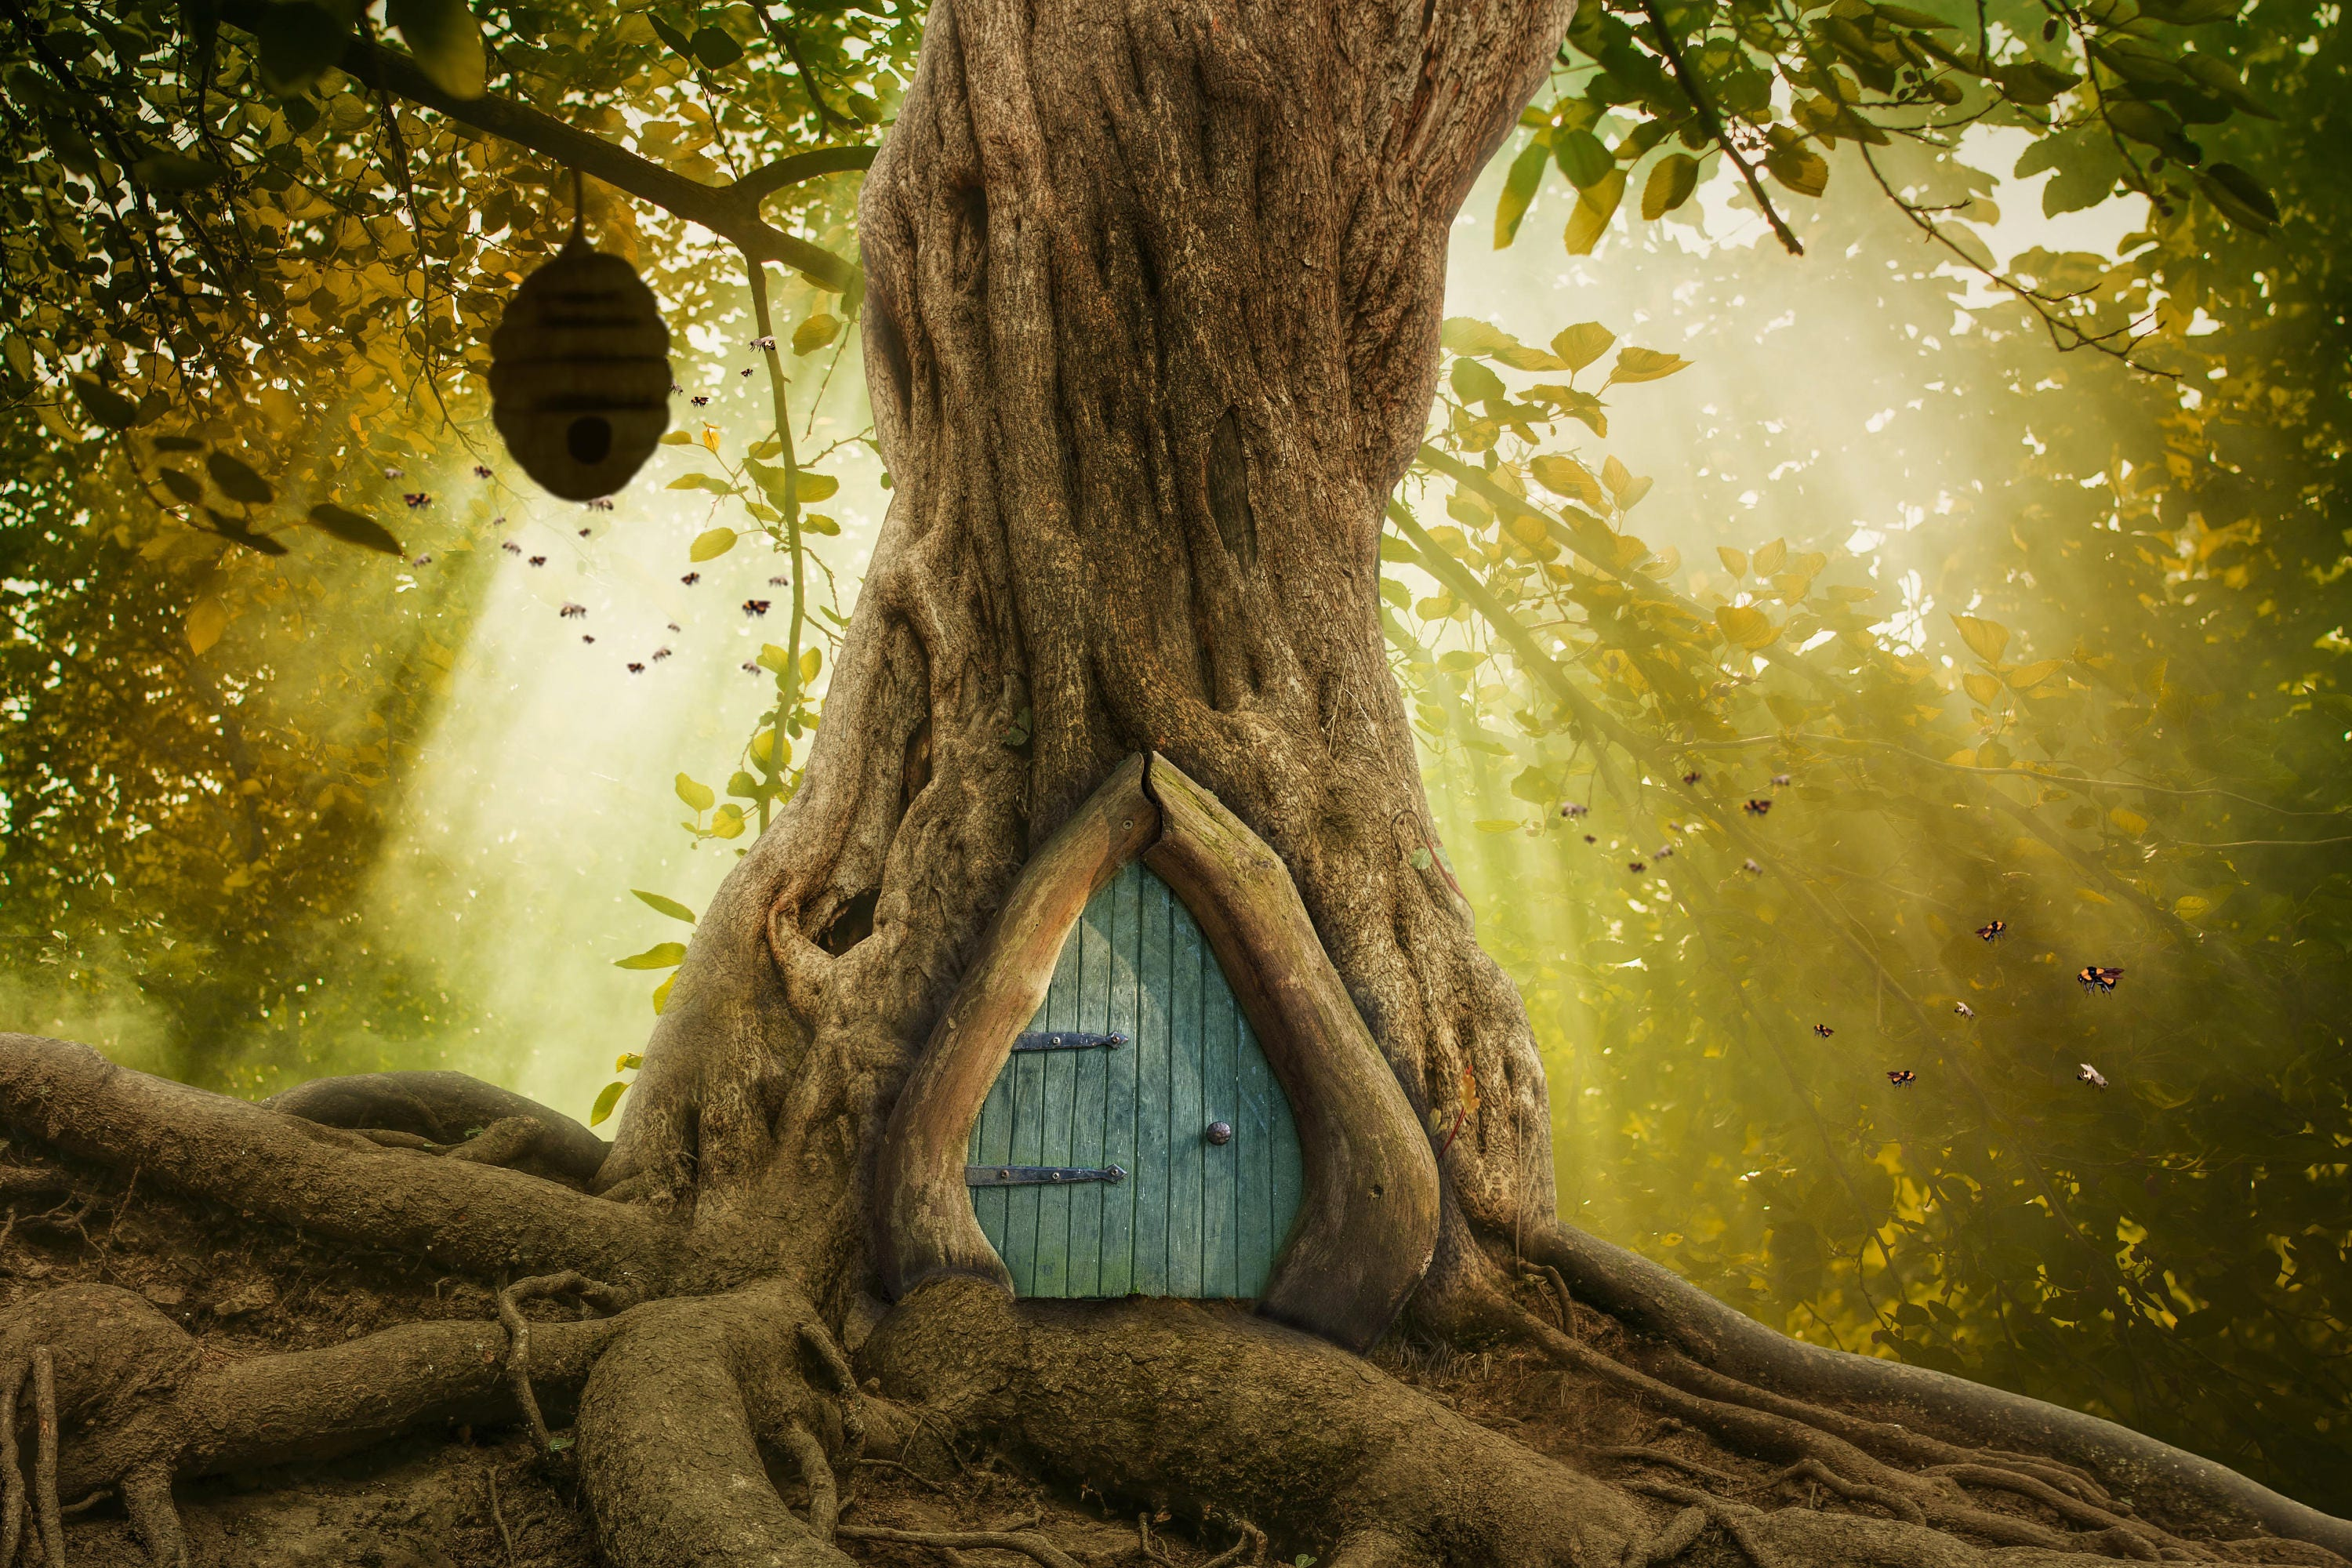 Winnie The Pooh Forest Background: Whimsical Forest Tree With Door / Winnie The Pooh Digital